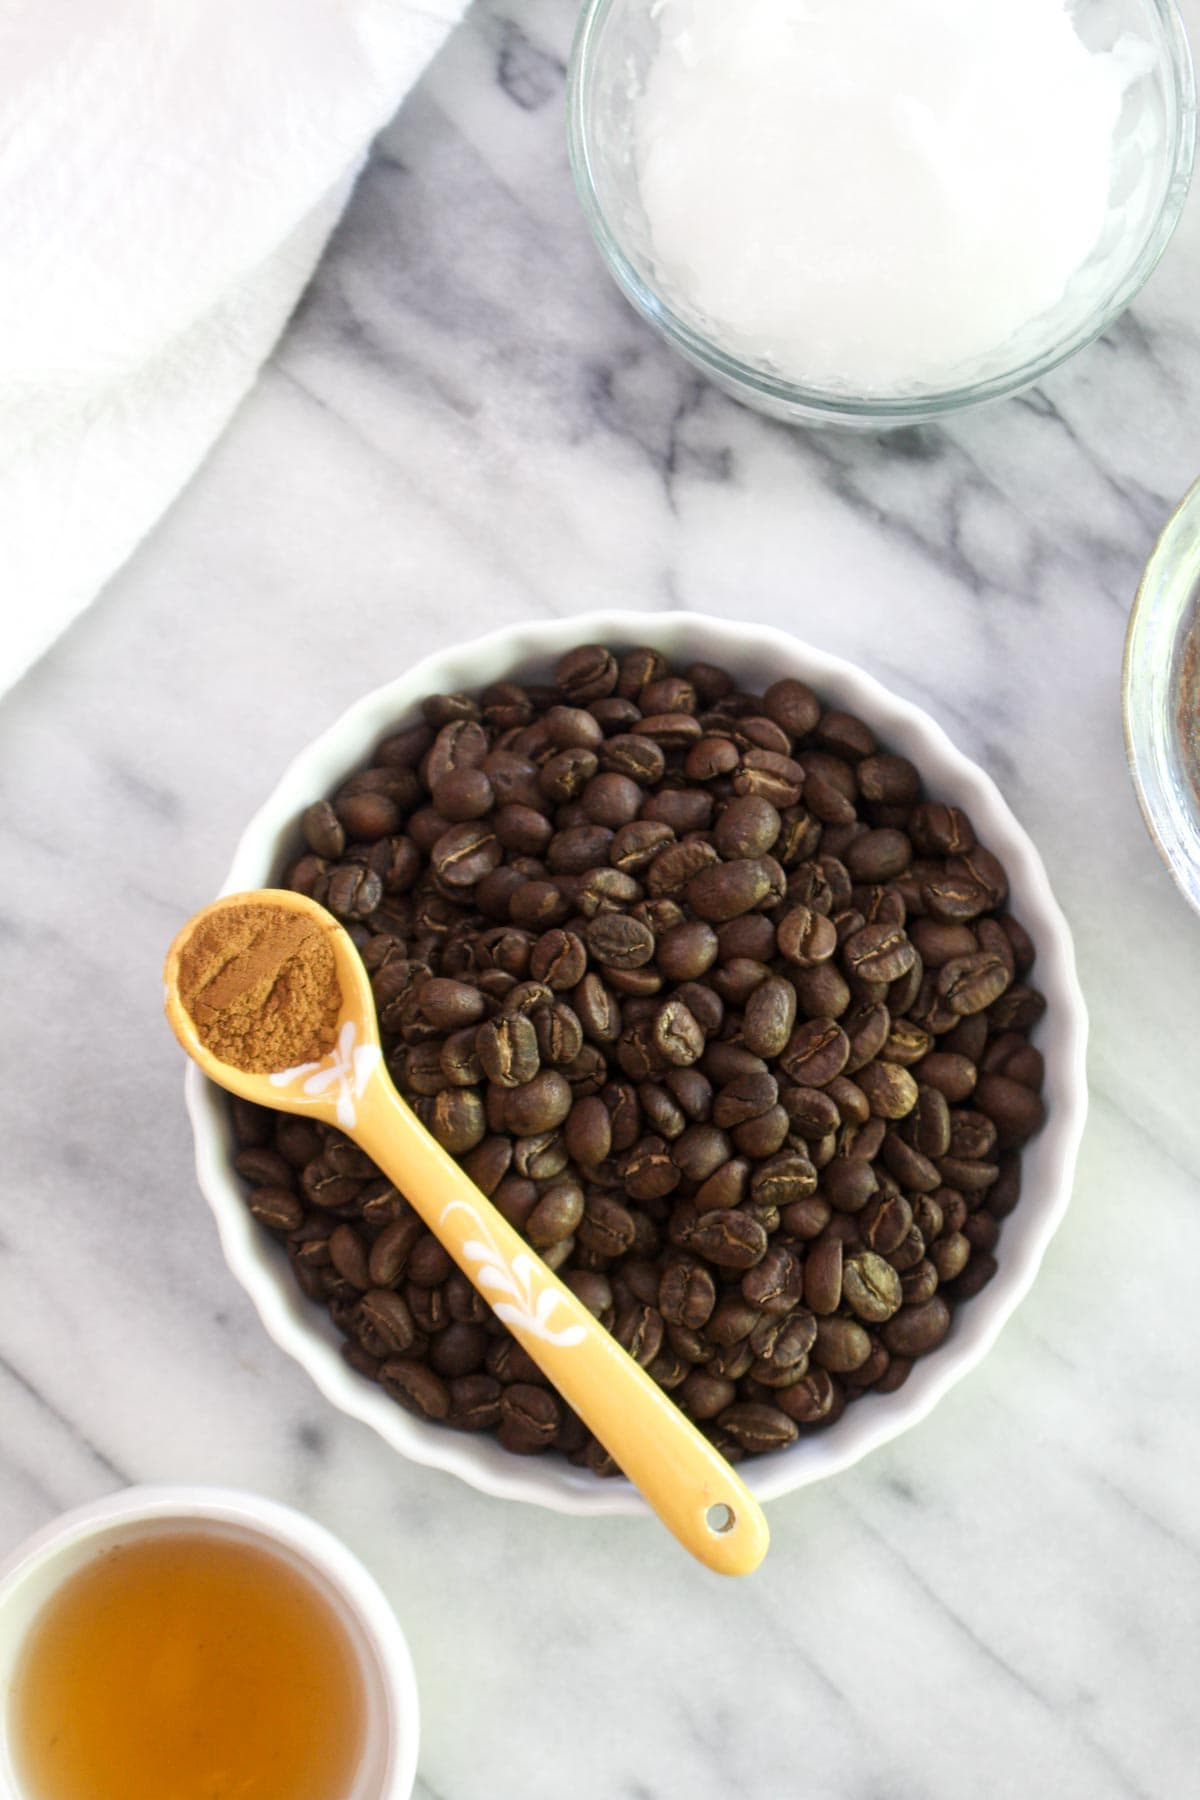 ThisBulletproof Coffee Body Scrub is a deep moisturizer and exfoliant all in one! This scrub can reduce cellulite, reveal radiant soft skin, and reduce the signs of aging with only 4 ingredients! | CatchingSeeds.com